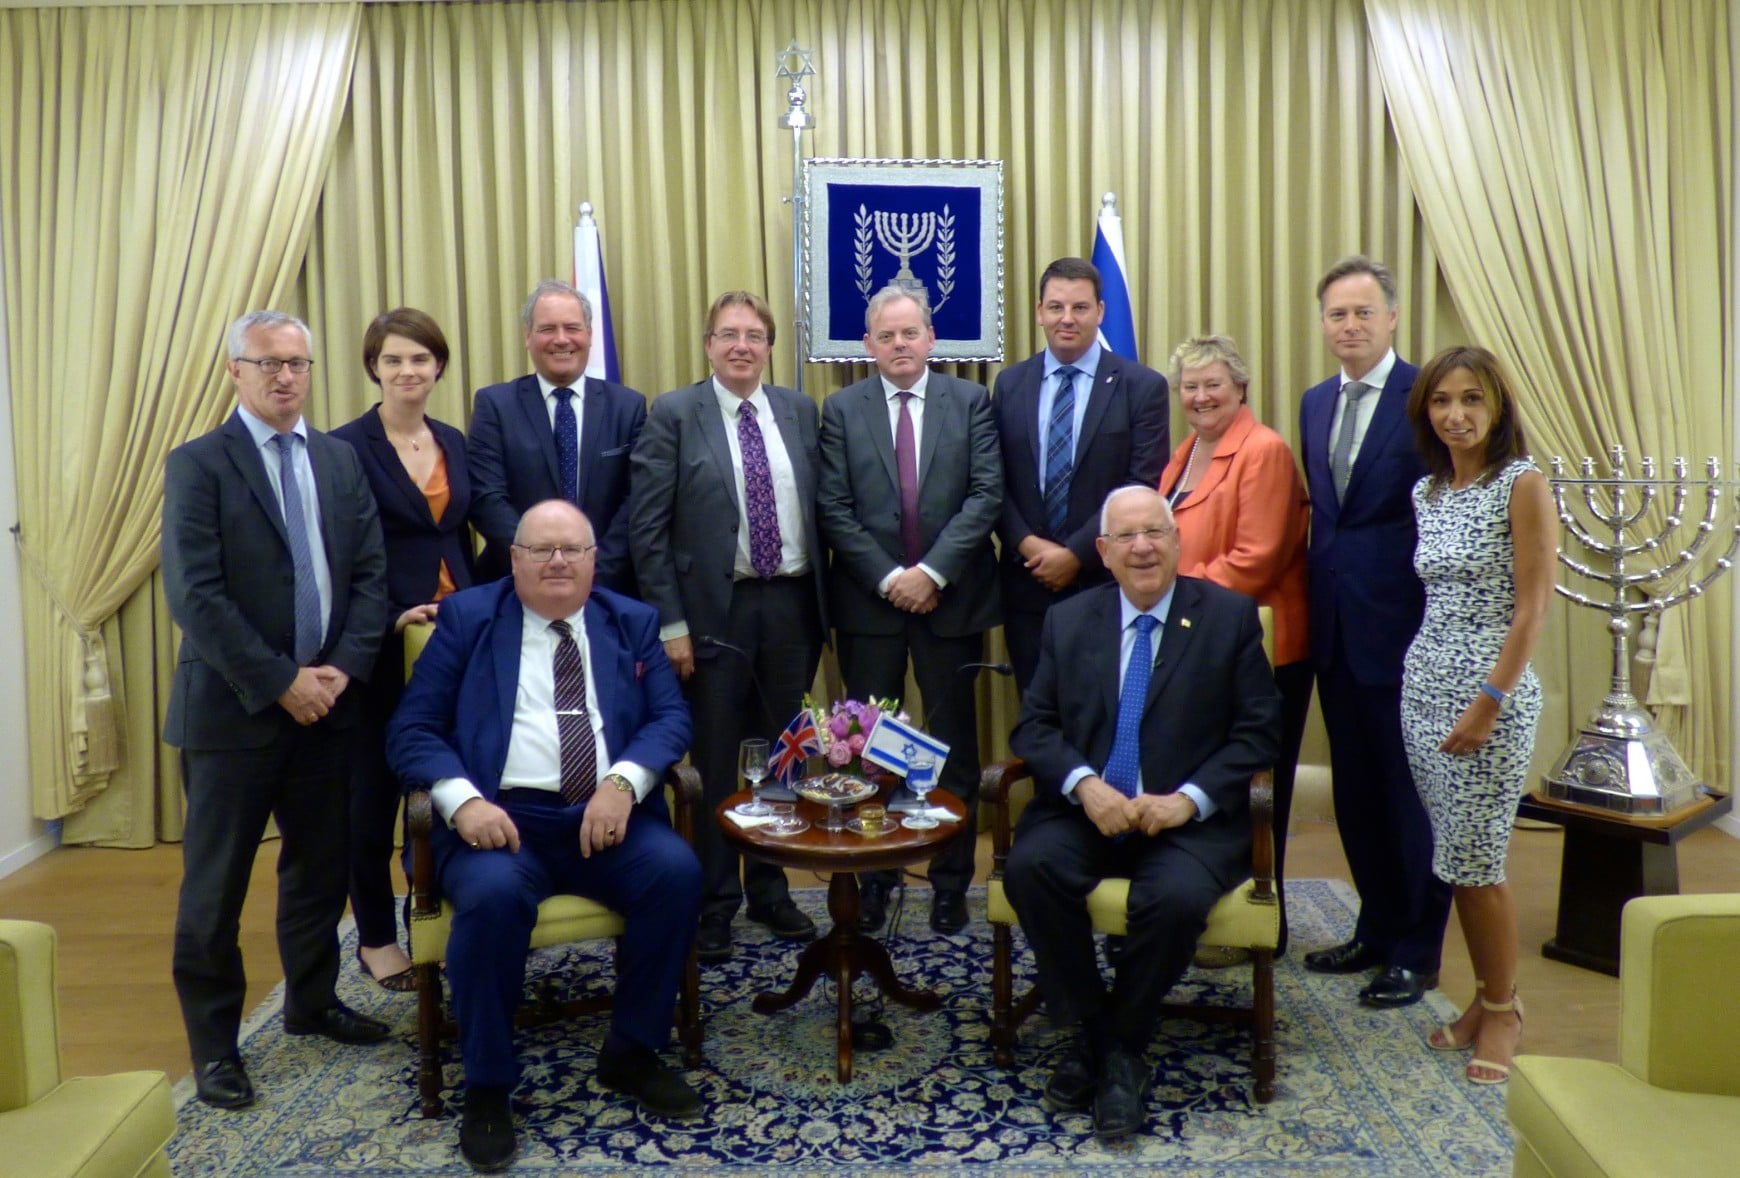 CFI Officers with President Rivlin